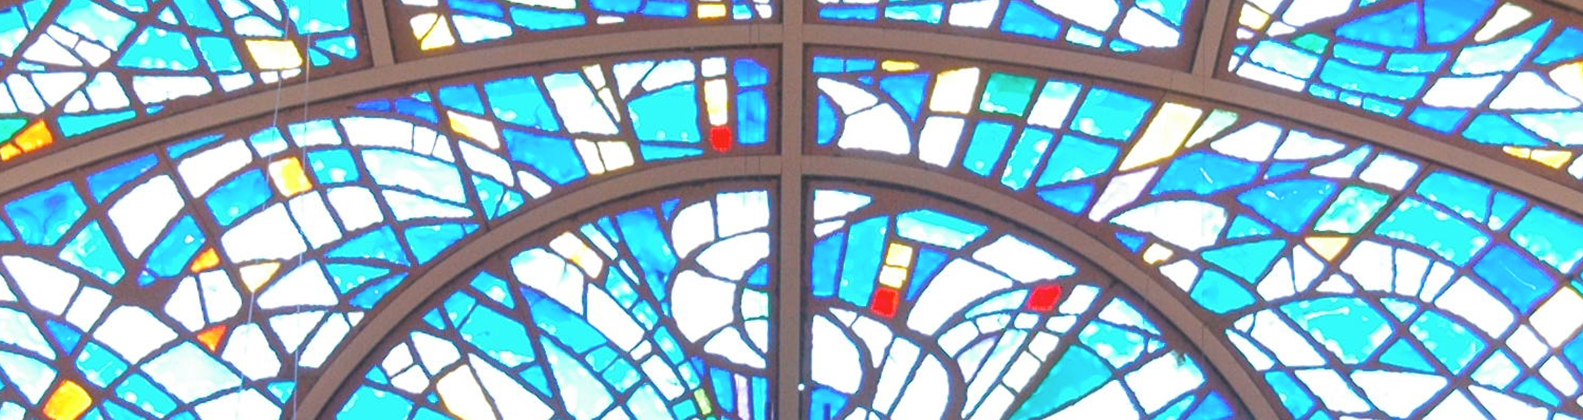 Sub_Header_Stained_Glass_5